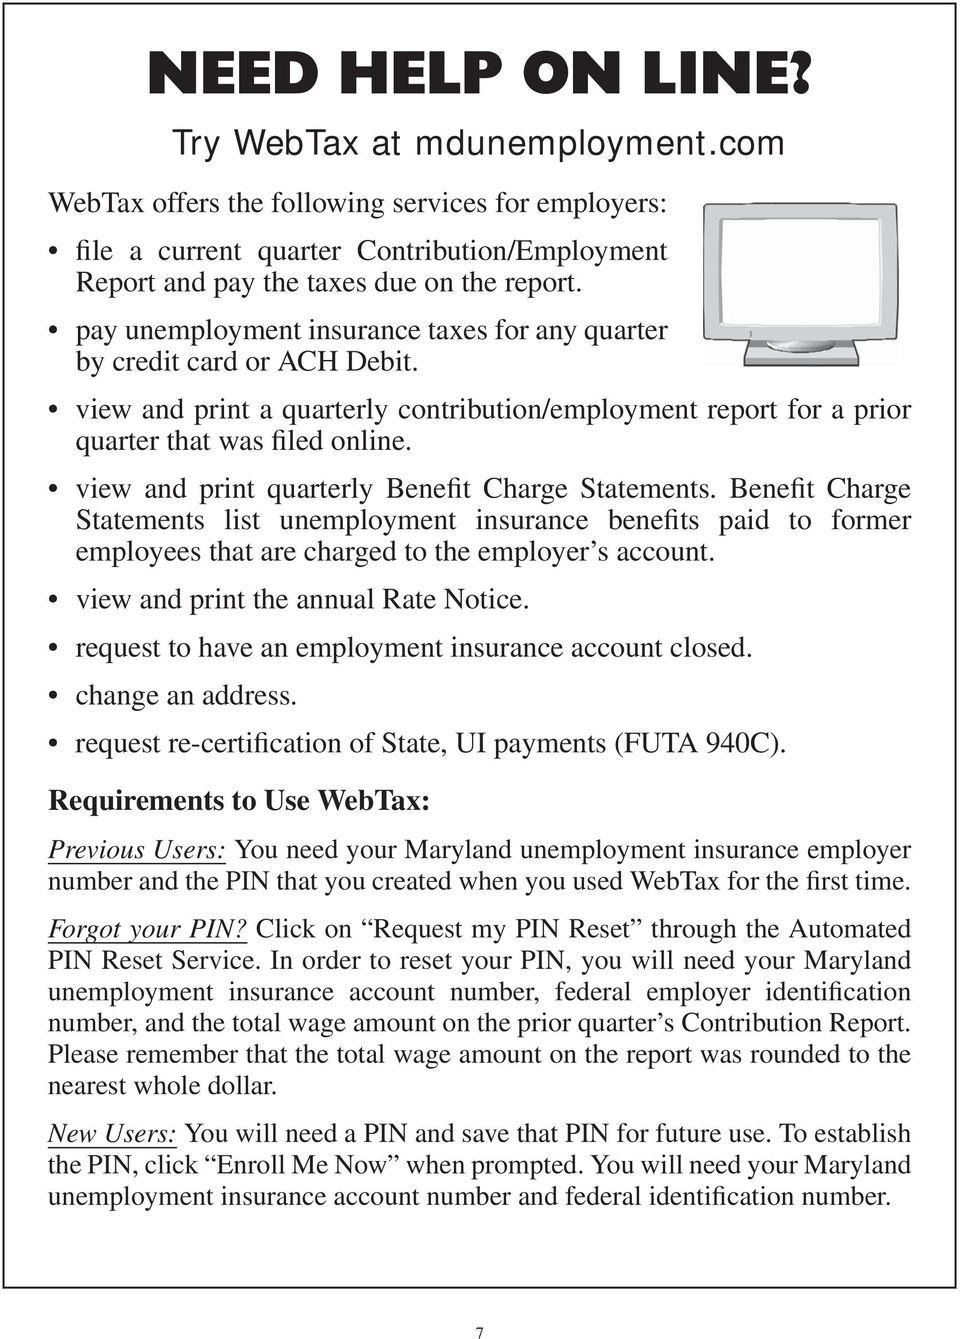 view and print quarterly Benefit Charge Statements. Benefit Charge Statements list unemployment insurance benefits paid to former employees that are charged to the employer s account.